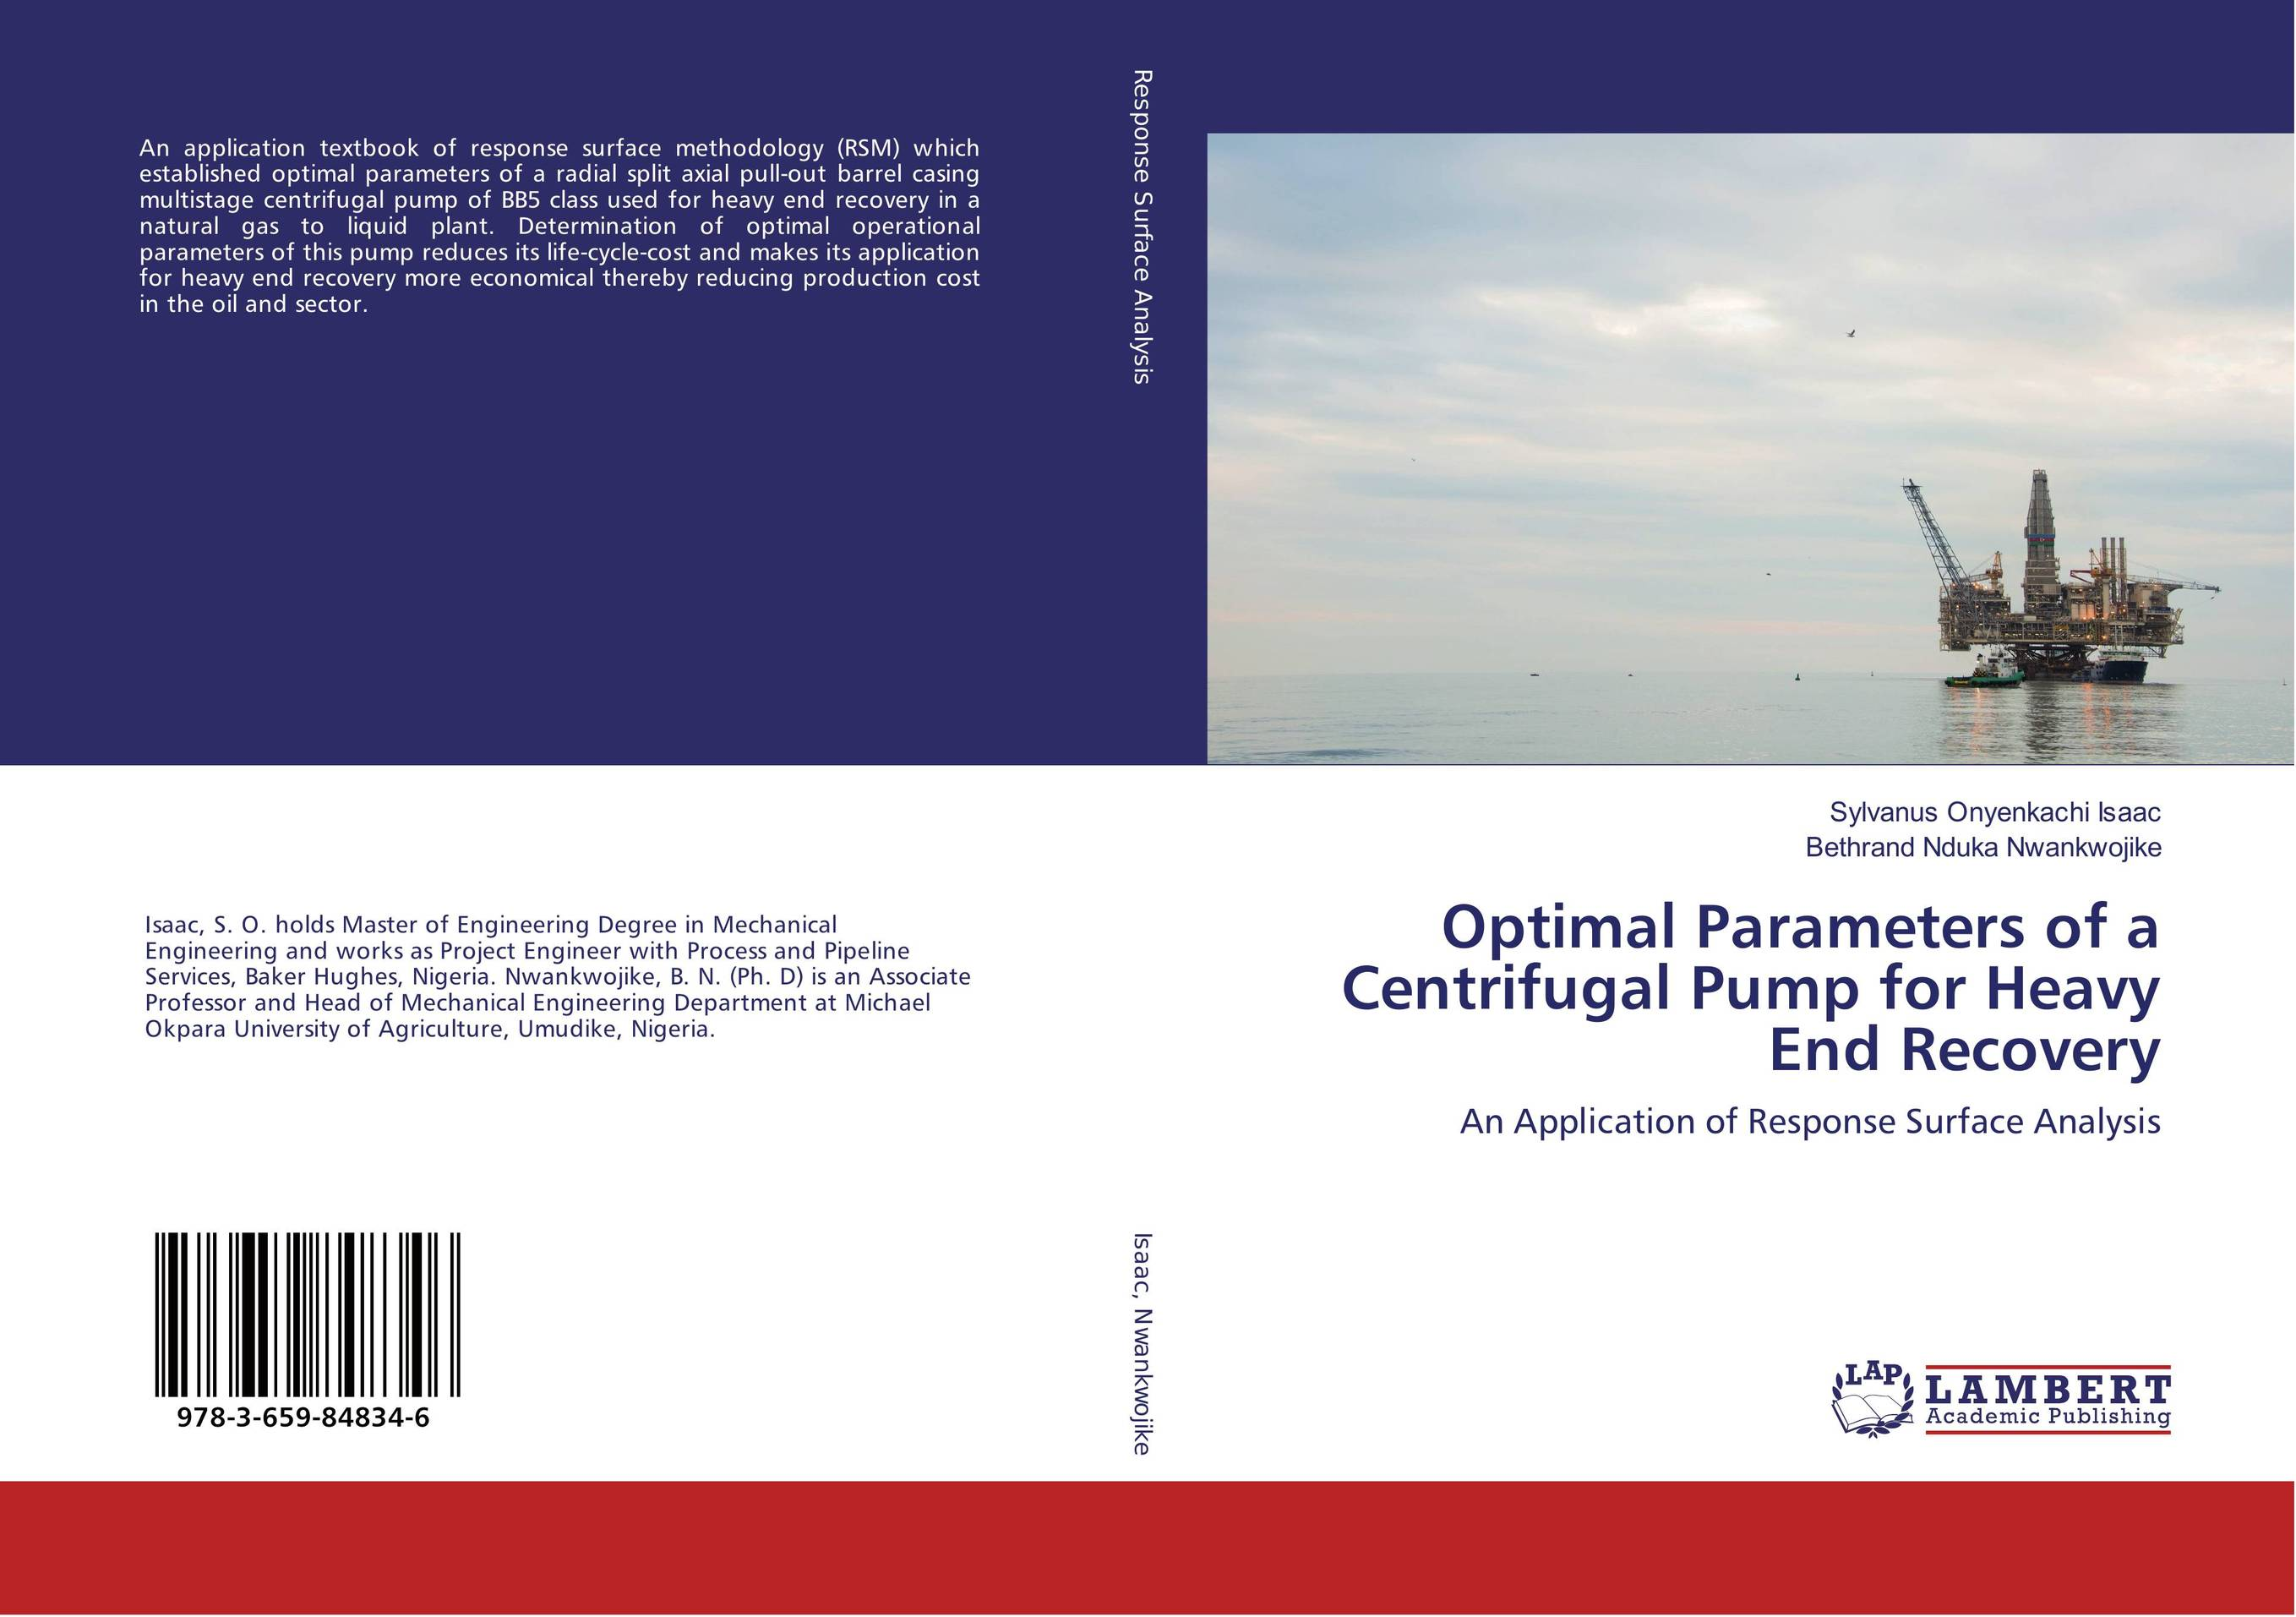 Optimal Parameters of a Centrifugal Pump for Heavy End Recovery